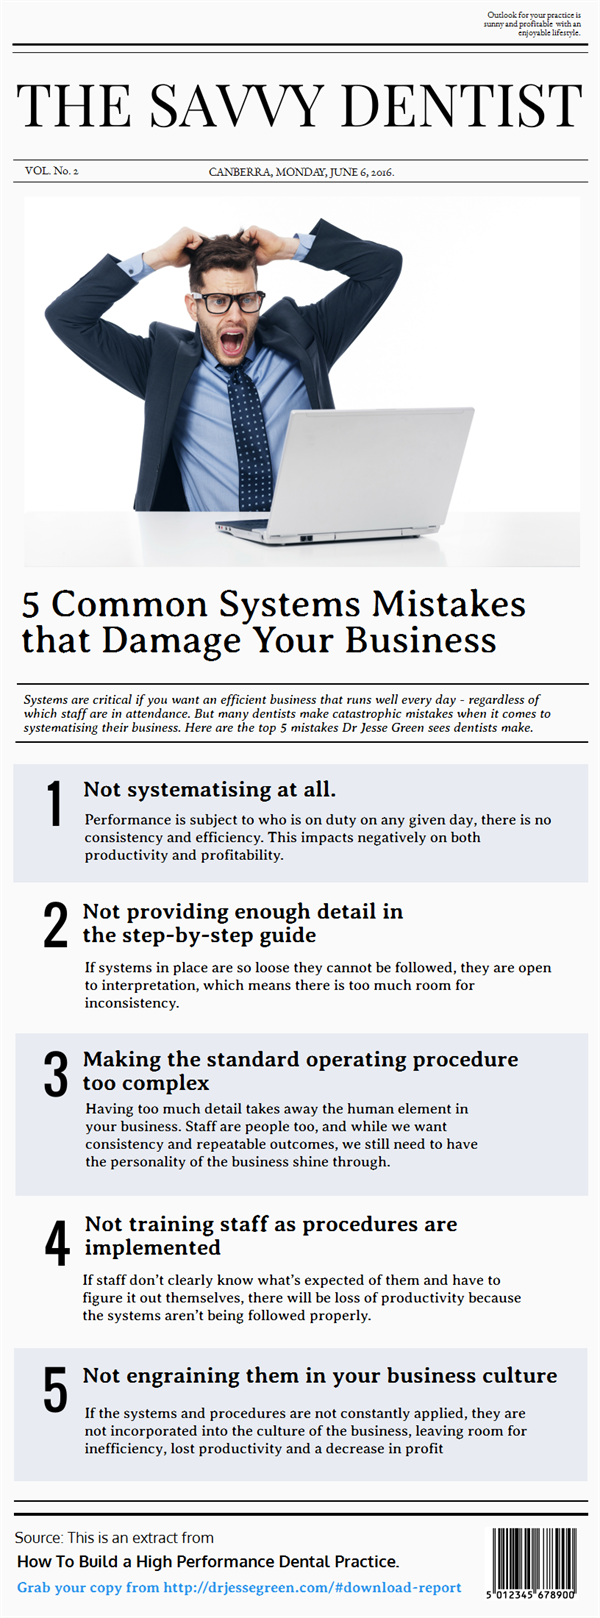 http://drjessegreen.com/wp-content/uploads/2016/06/Common-mistakes-v2.png